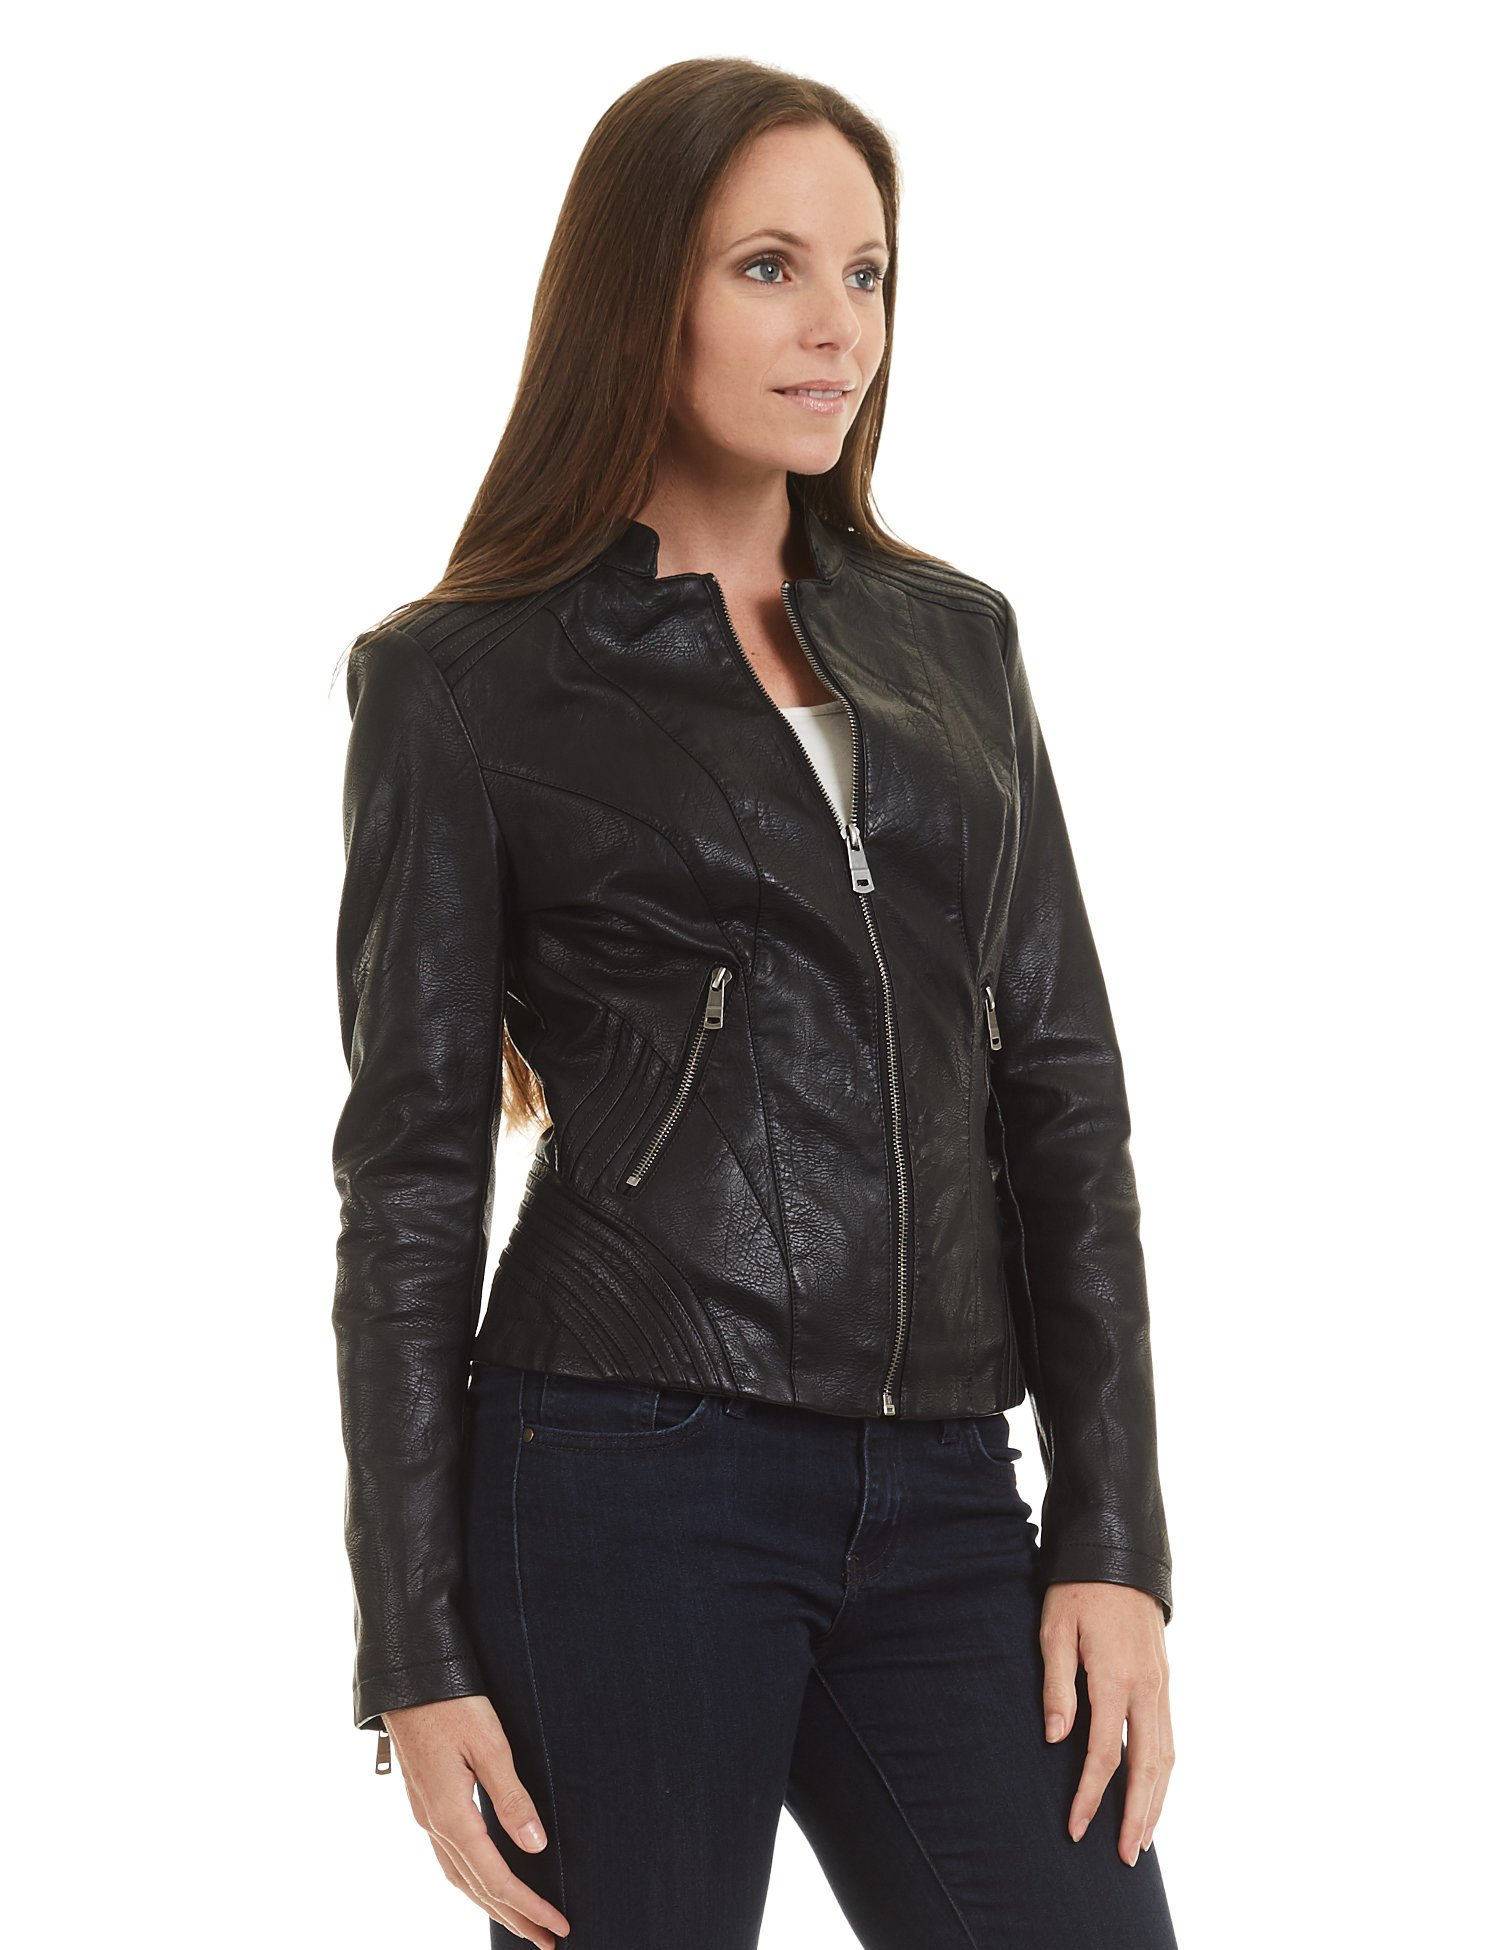 Made By Johnny WJC1427 Womens Quilted Faux Leather Biker Jacket M Black